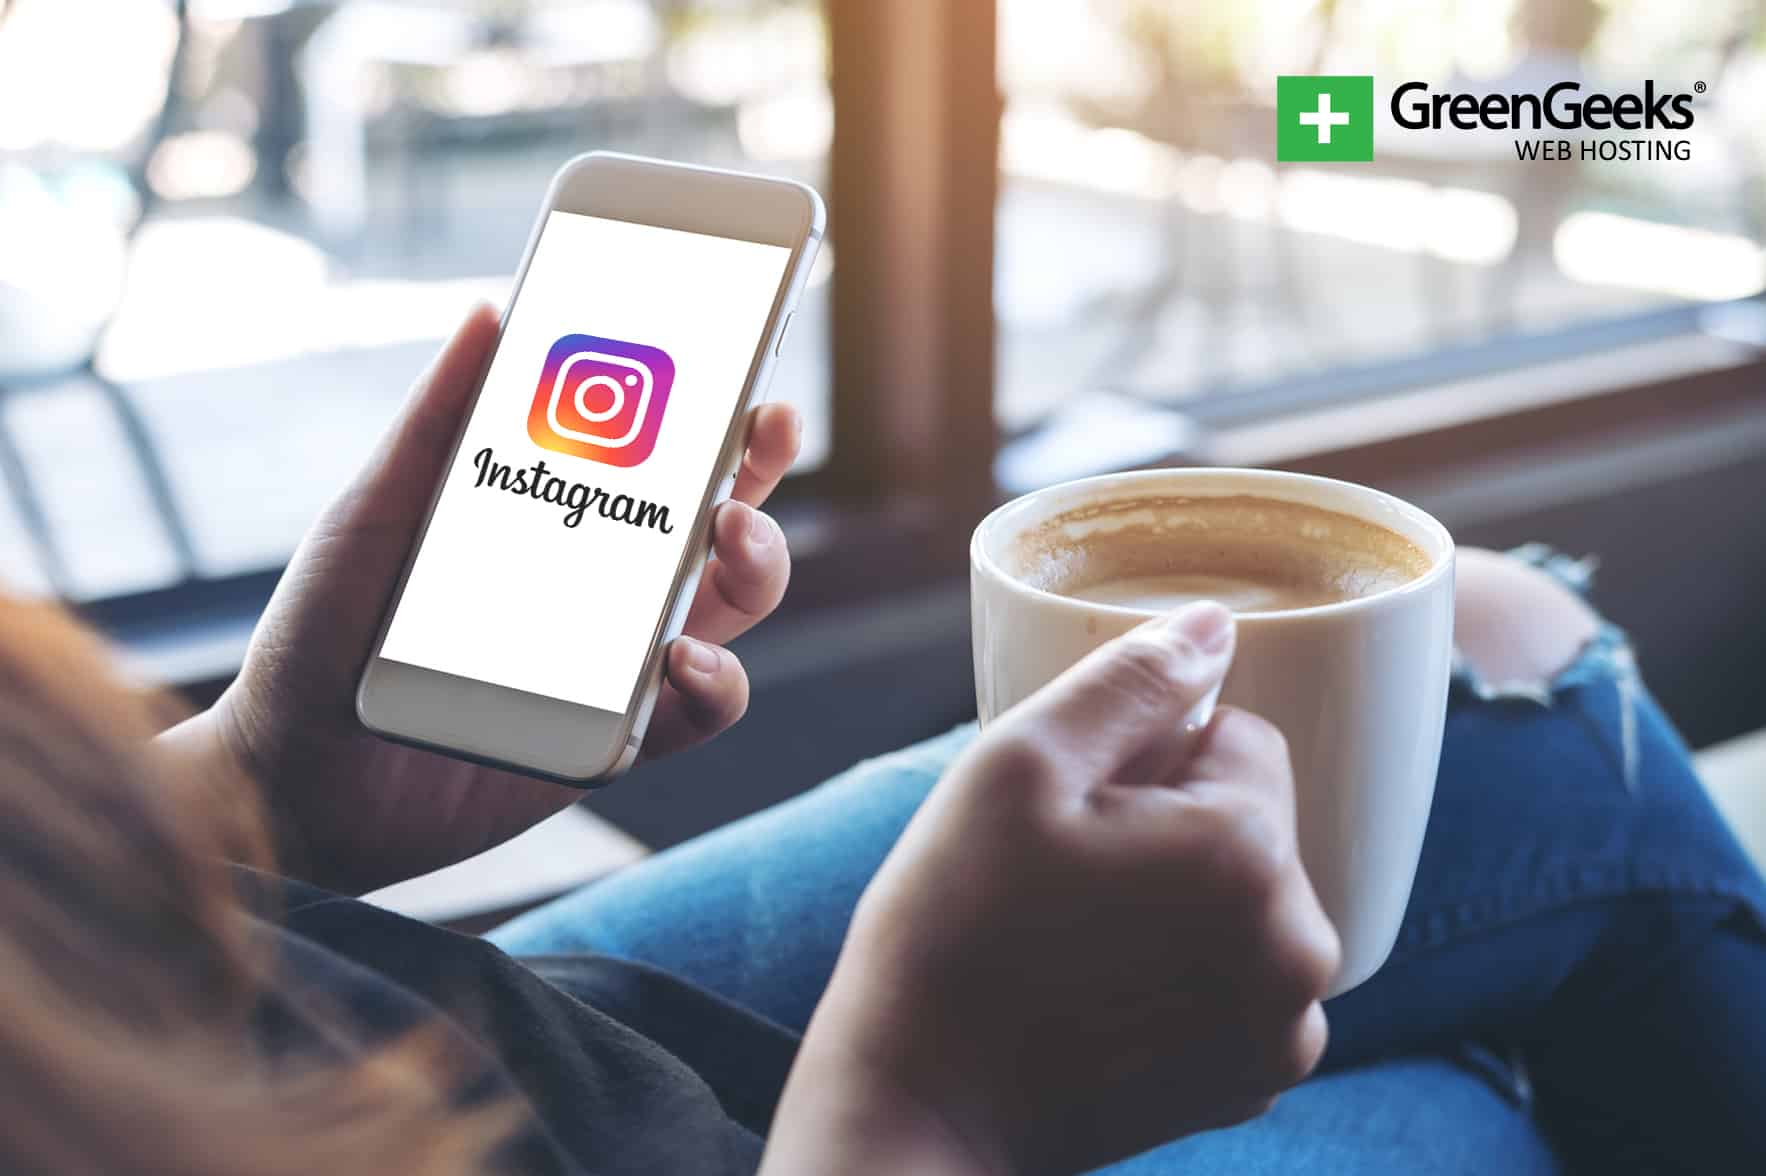 9 Instagram Tools That Will Help Grow Your Followers